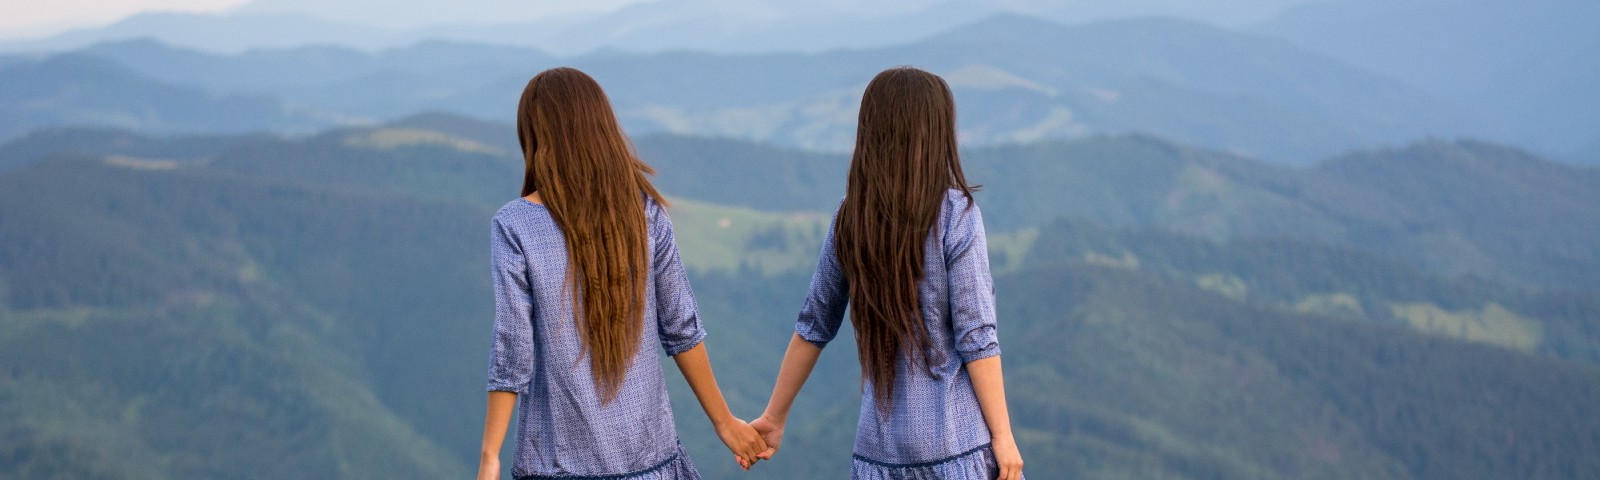 Two women looking over the mountains